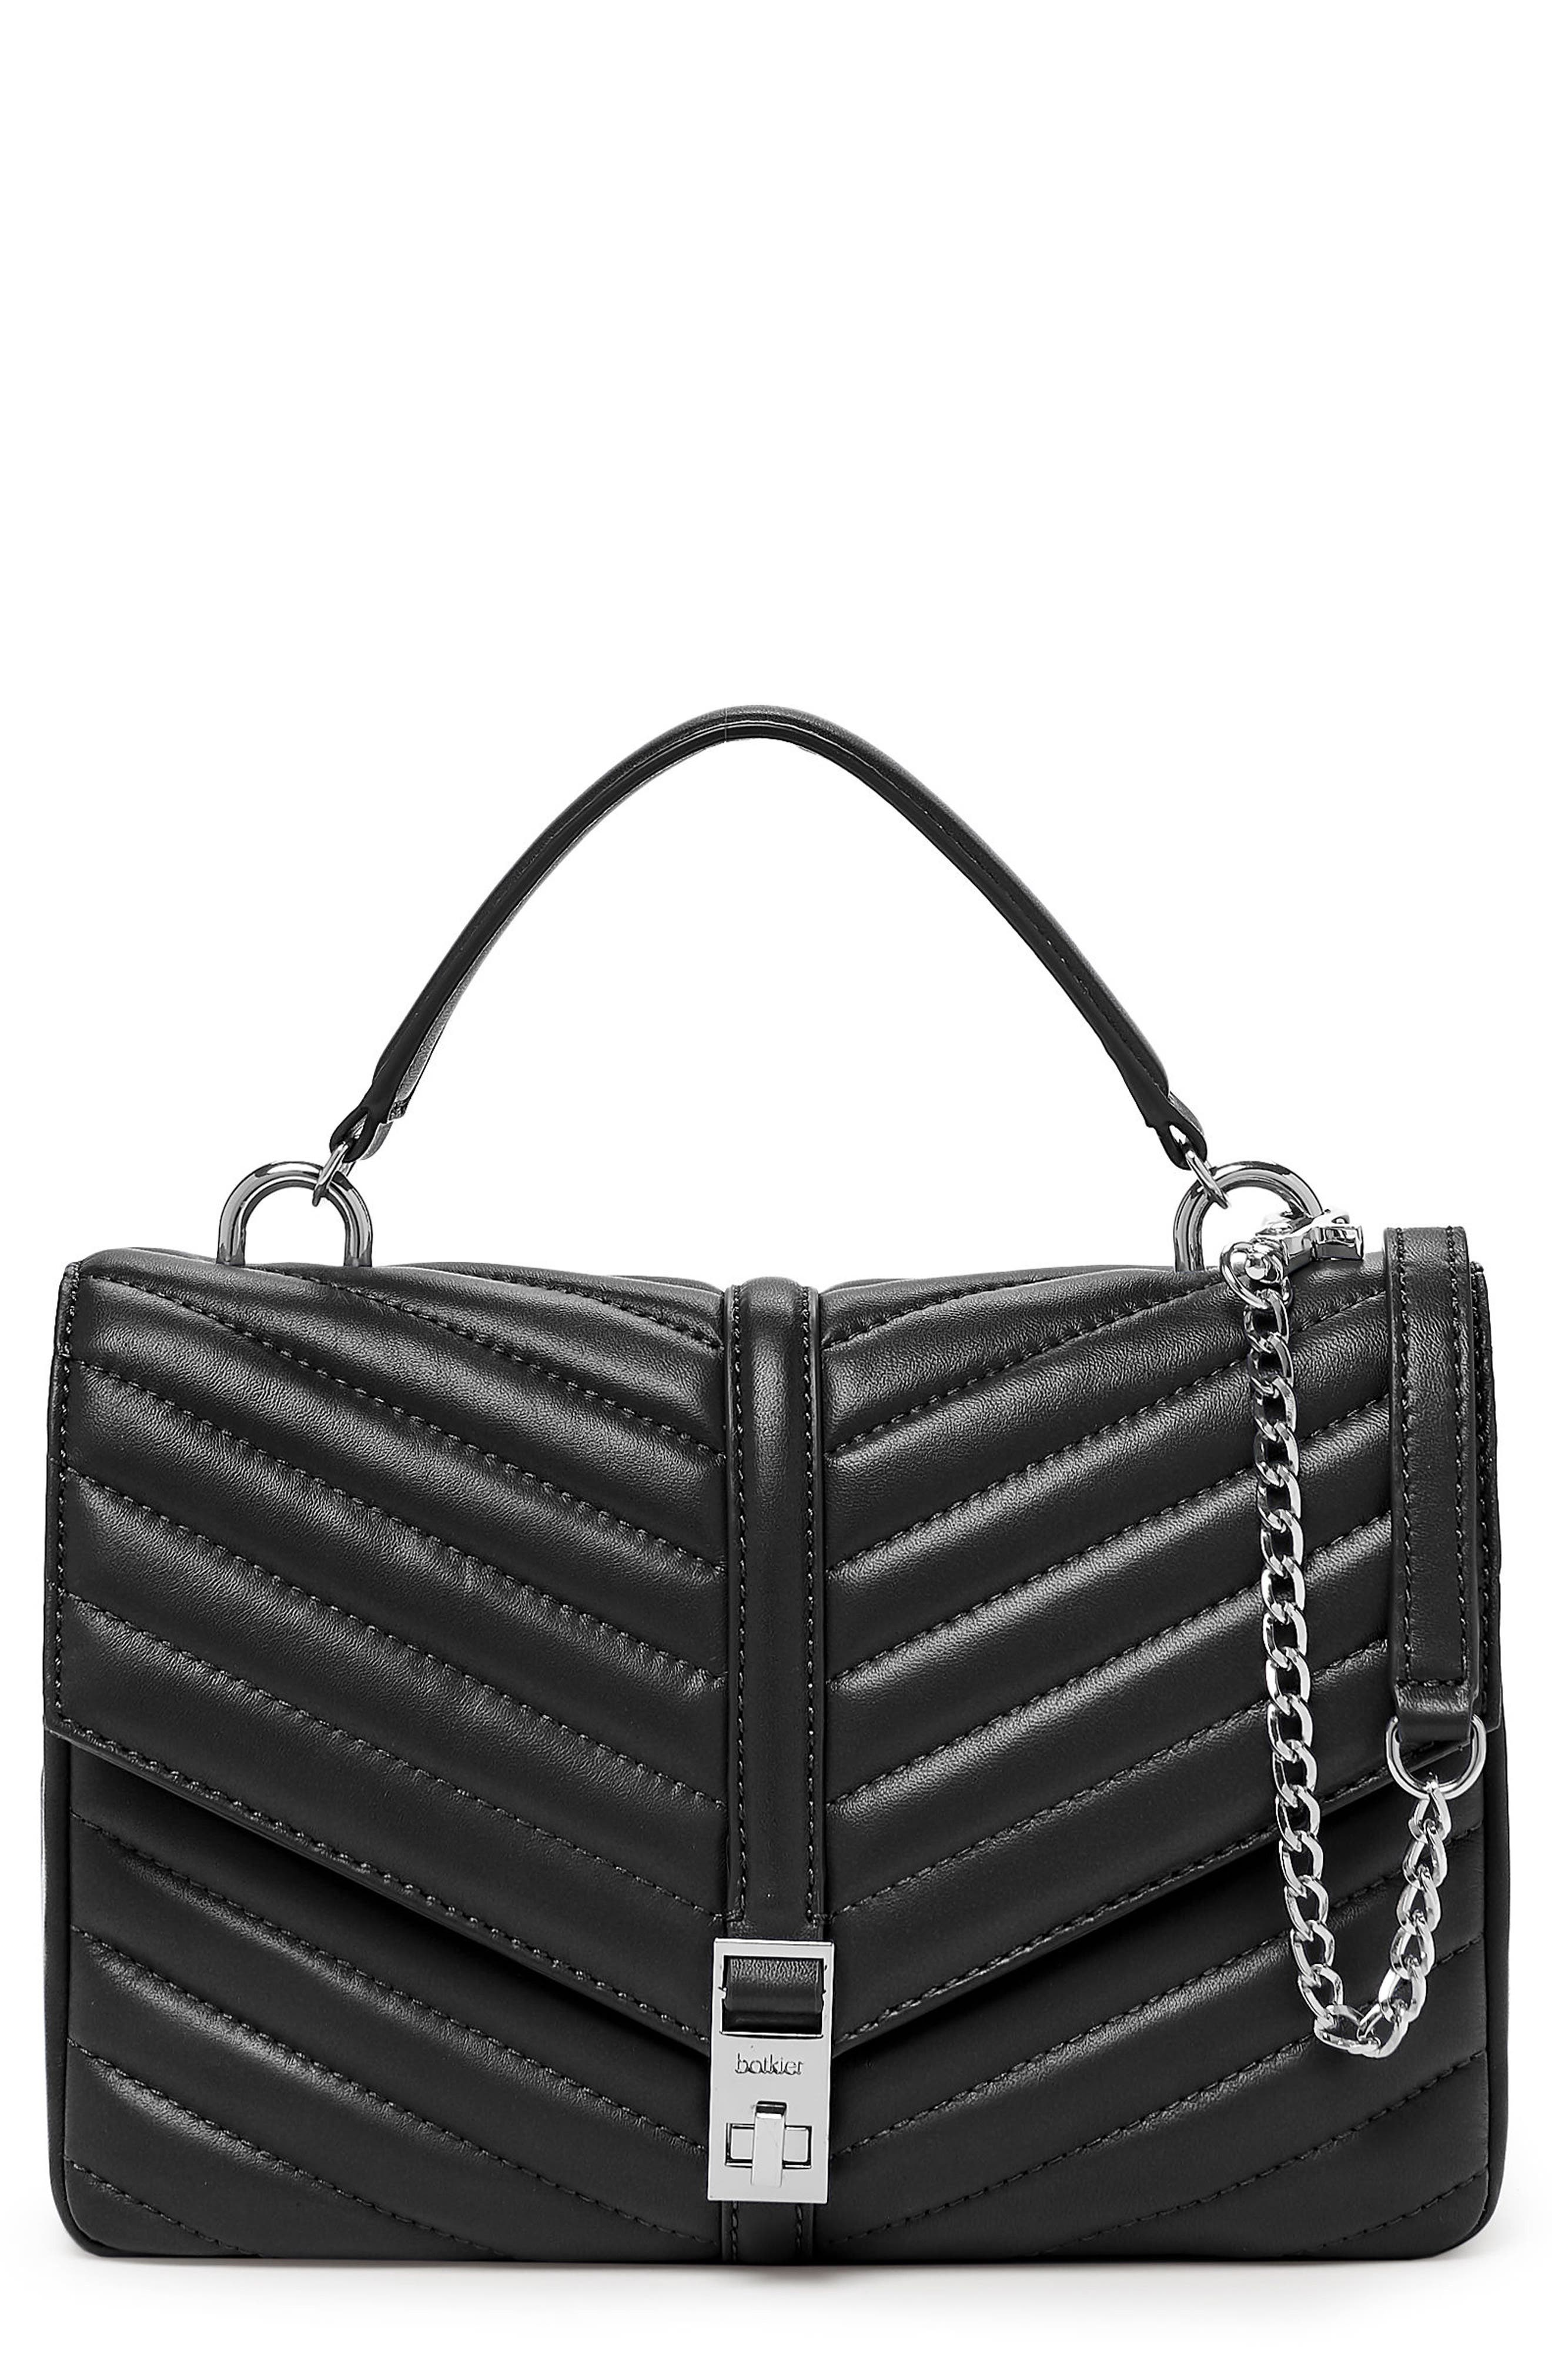 Dakota Quilted Leather Top Handle Bag,                         Main,                         color, BLACK